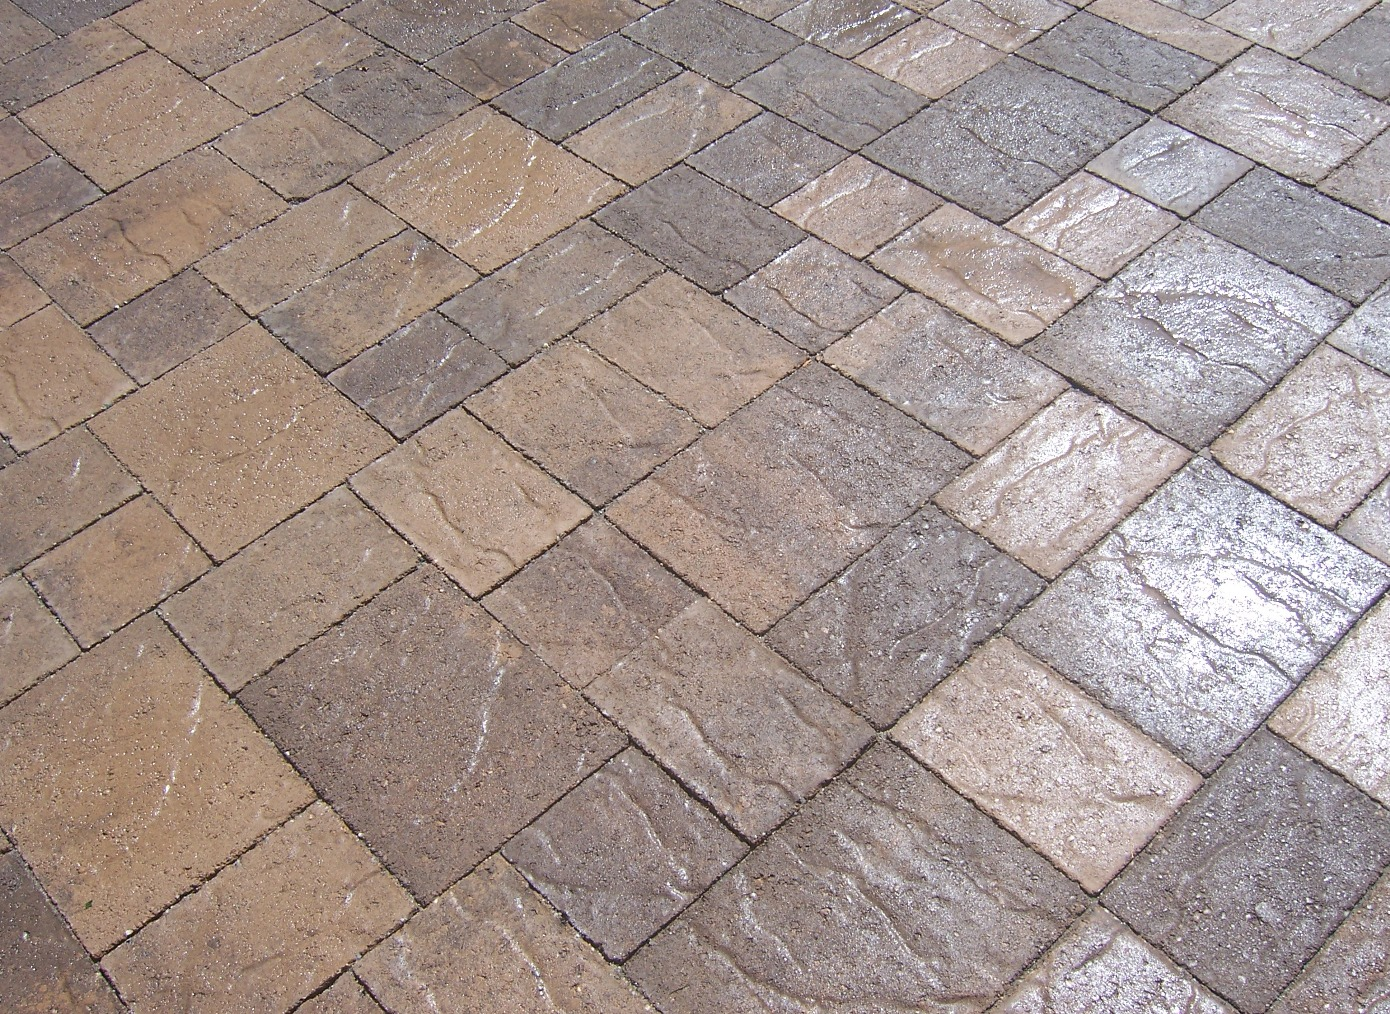 The 2 Minute Gardener: Photo - Stone Top Tumbled Pavers